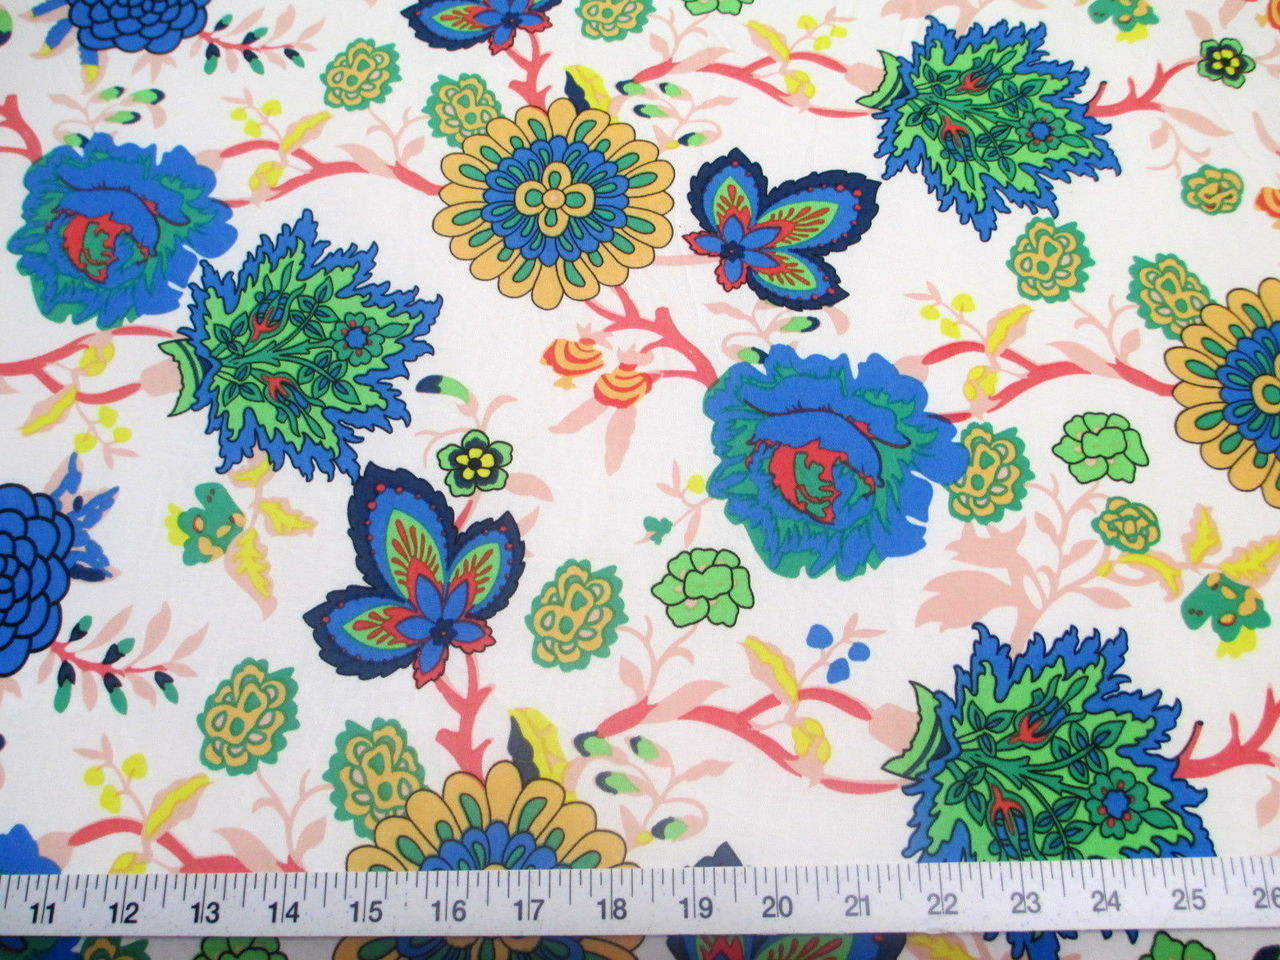 Printed Lycra Spandex Stretch Pink Blue White Floral Discount